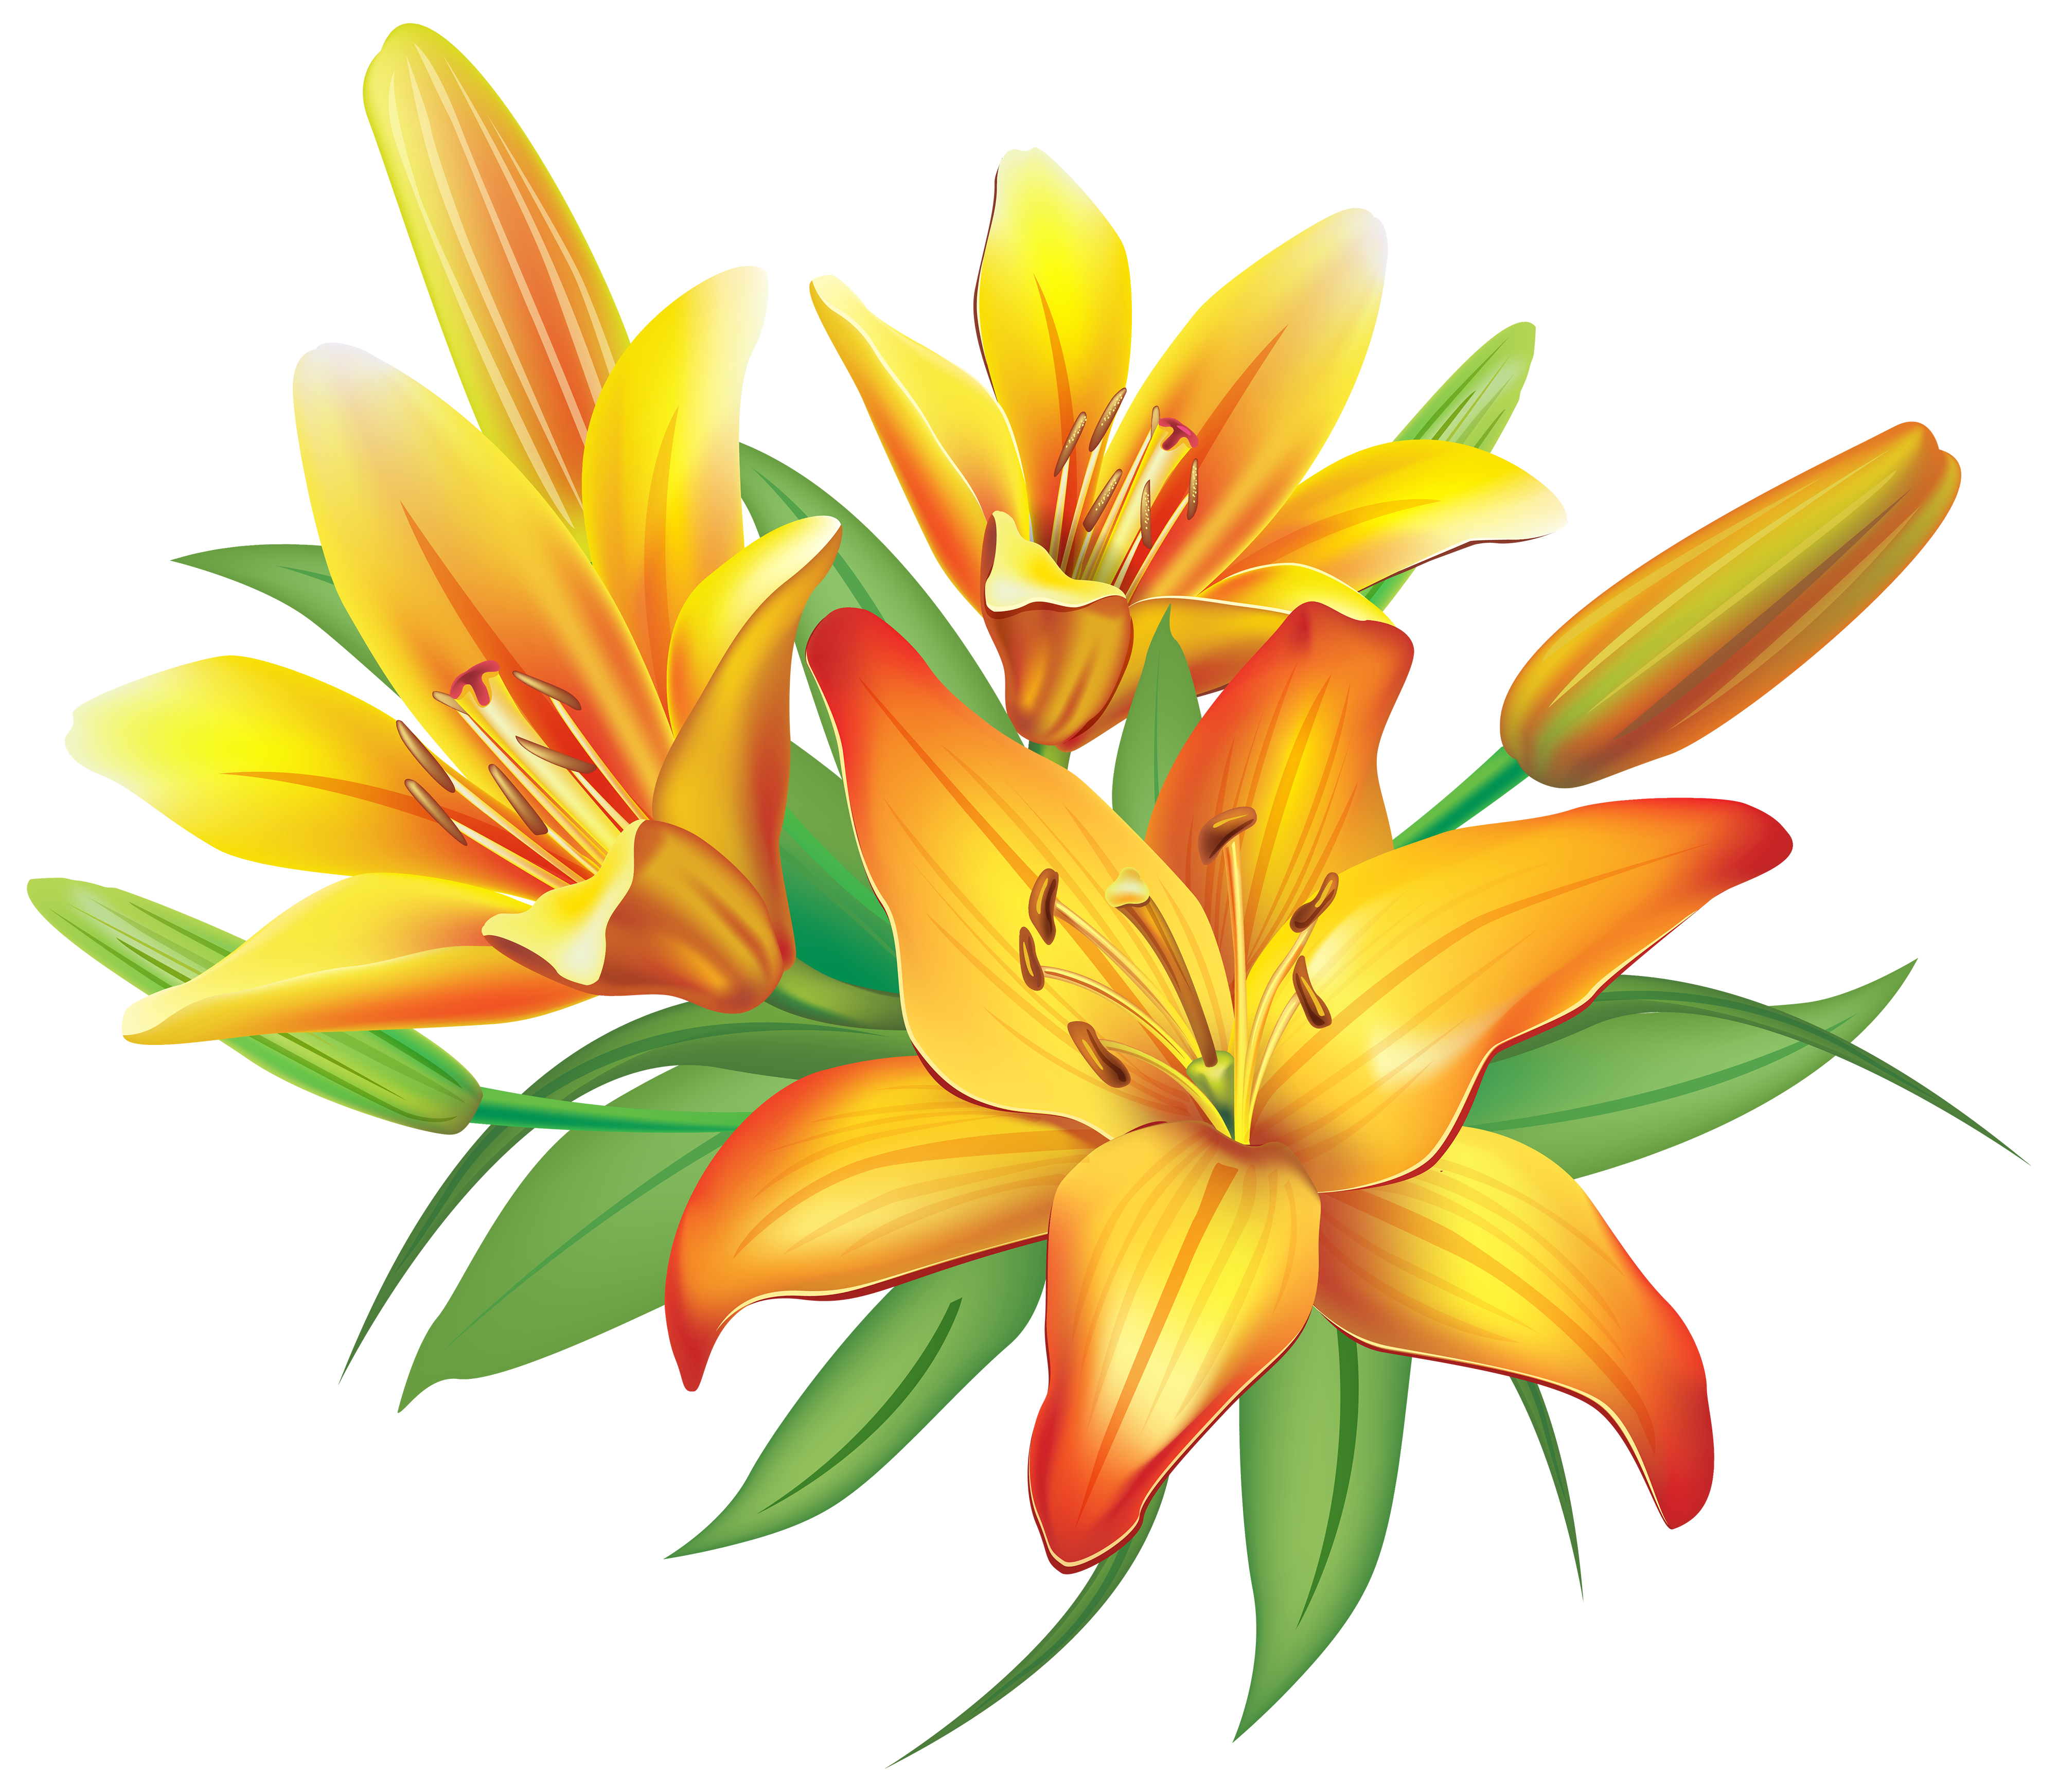 Lily flower clipart transparent download Yellow Lilies Flowers Decoration PNG Clipart Image | flowers ... transparent download